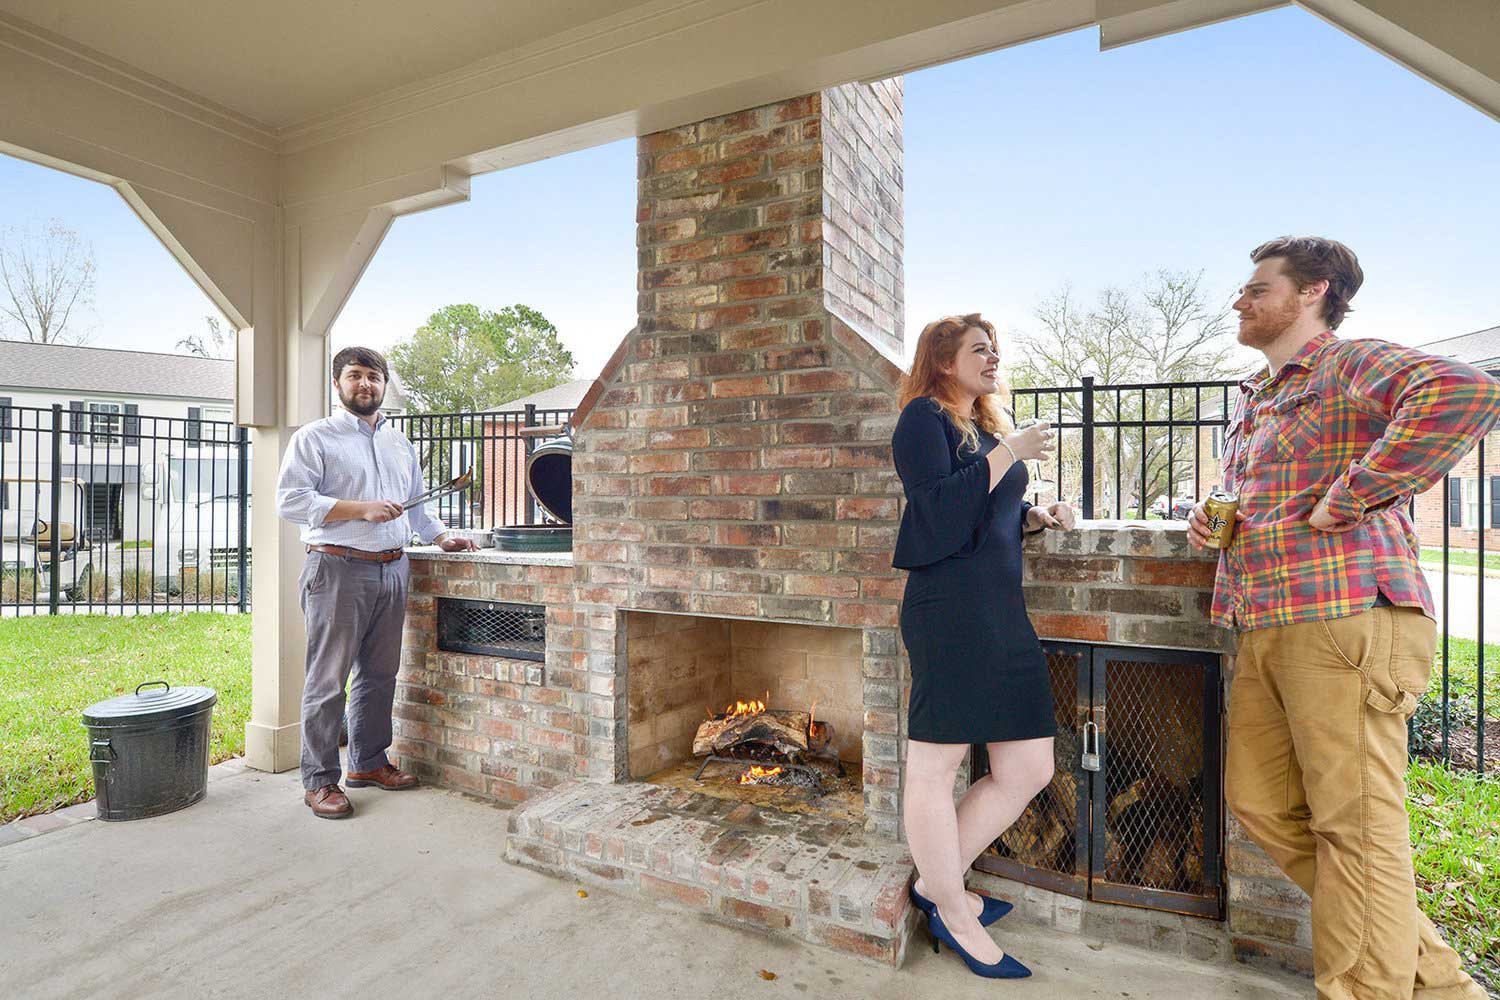 Outdoor Fireplace at Ardendale Oaks Apartments in Baton Rouge, Louisiana